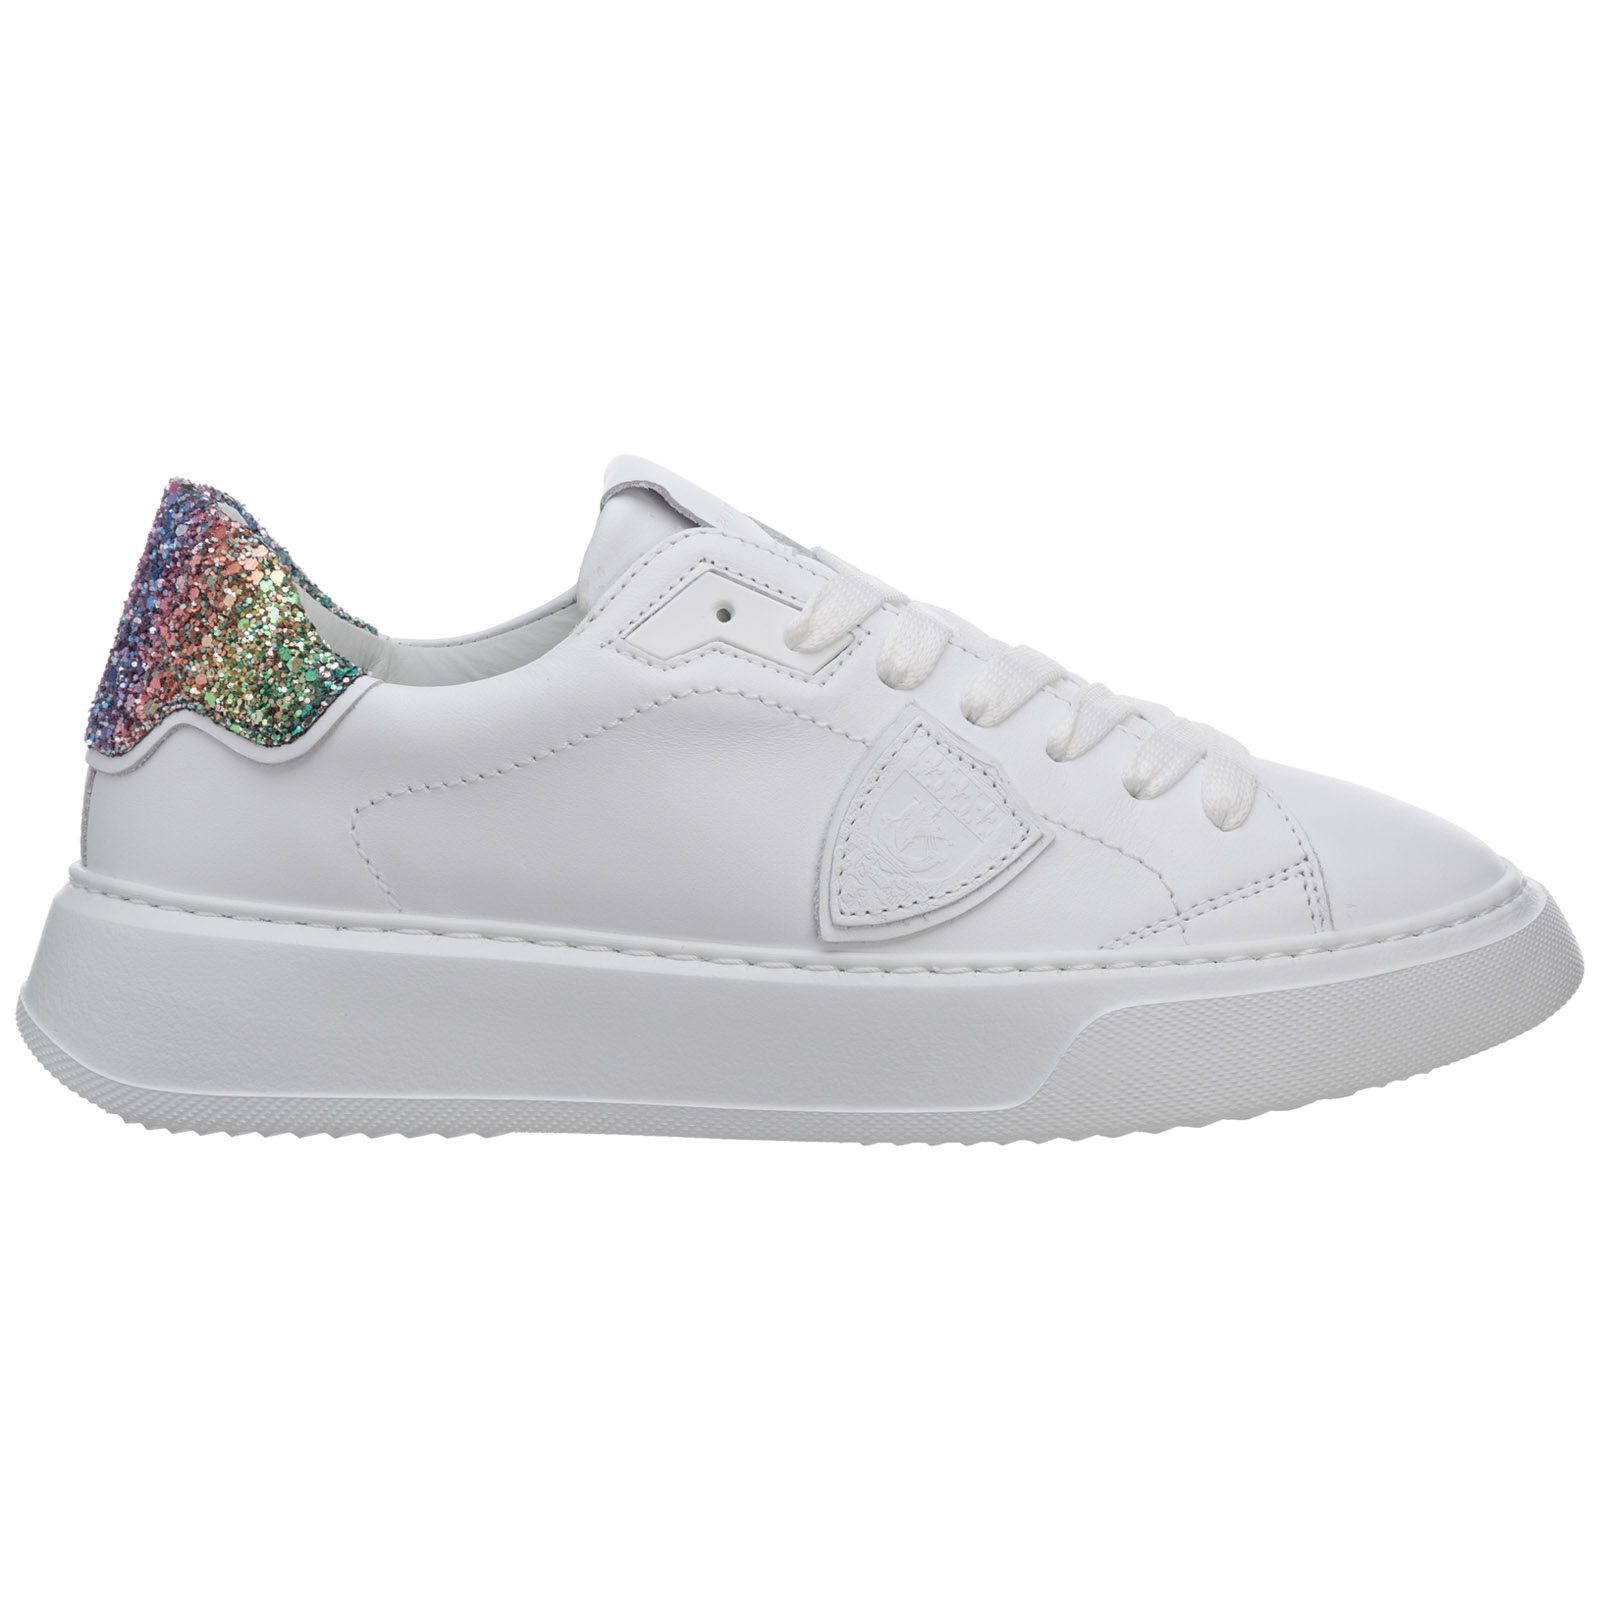 Philippe Model WOMEN'S SHOES LEATHER TRAINERS SNEAKERS TEMPLE